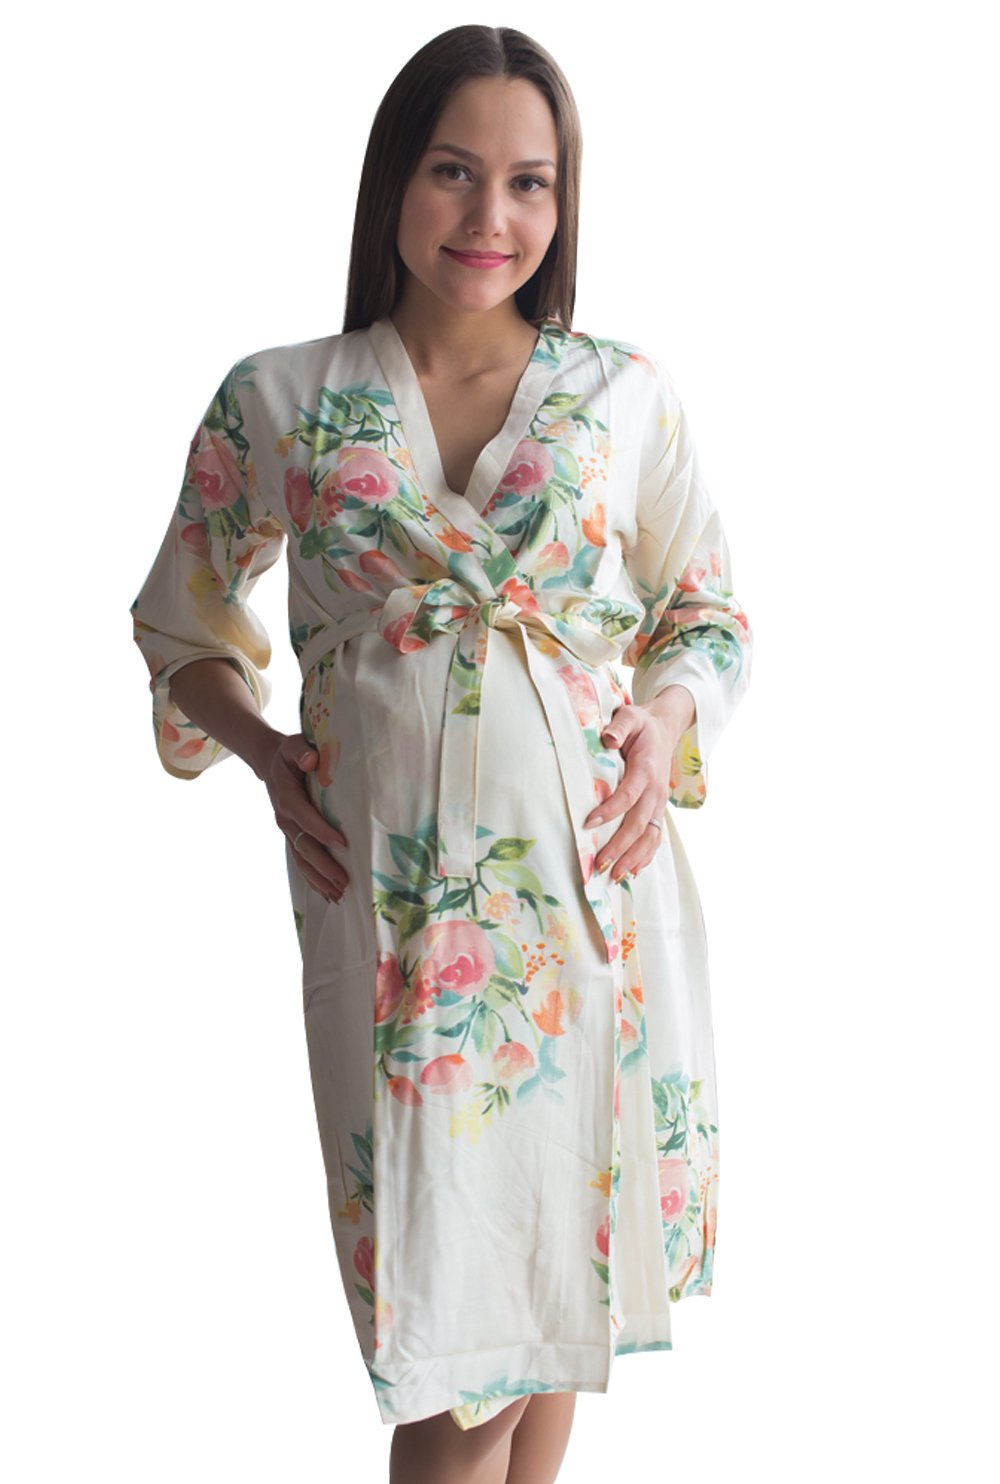 My Growing Belly Cream Floral Maternity Robe - Perfect as Hospital Gown, Labor & birthing Gown, Nursing Robe (2Xlarge, Cream Dreamy Angel Song)